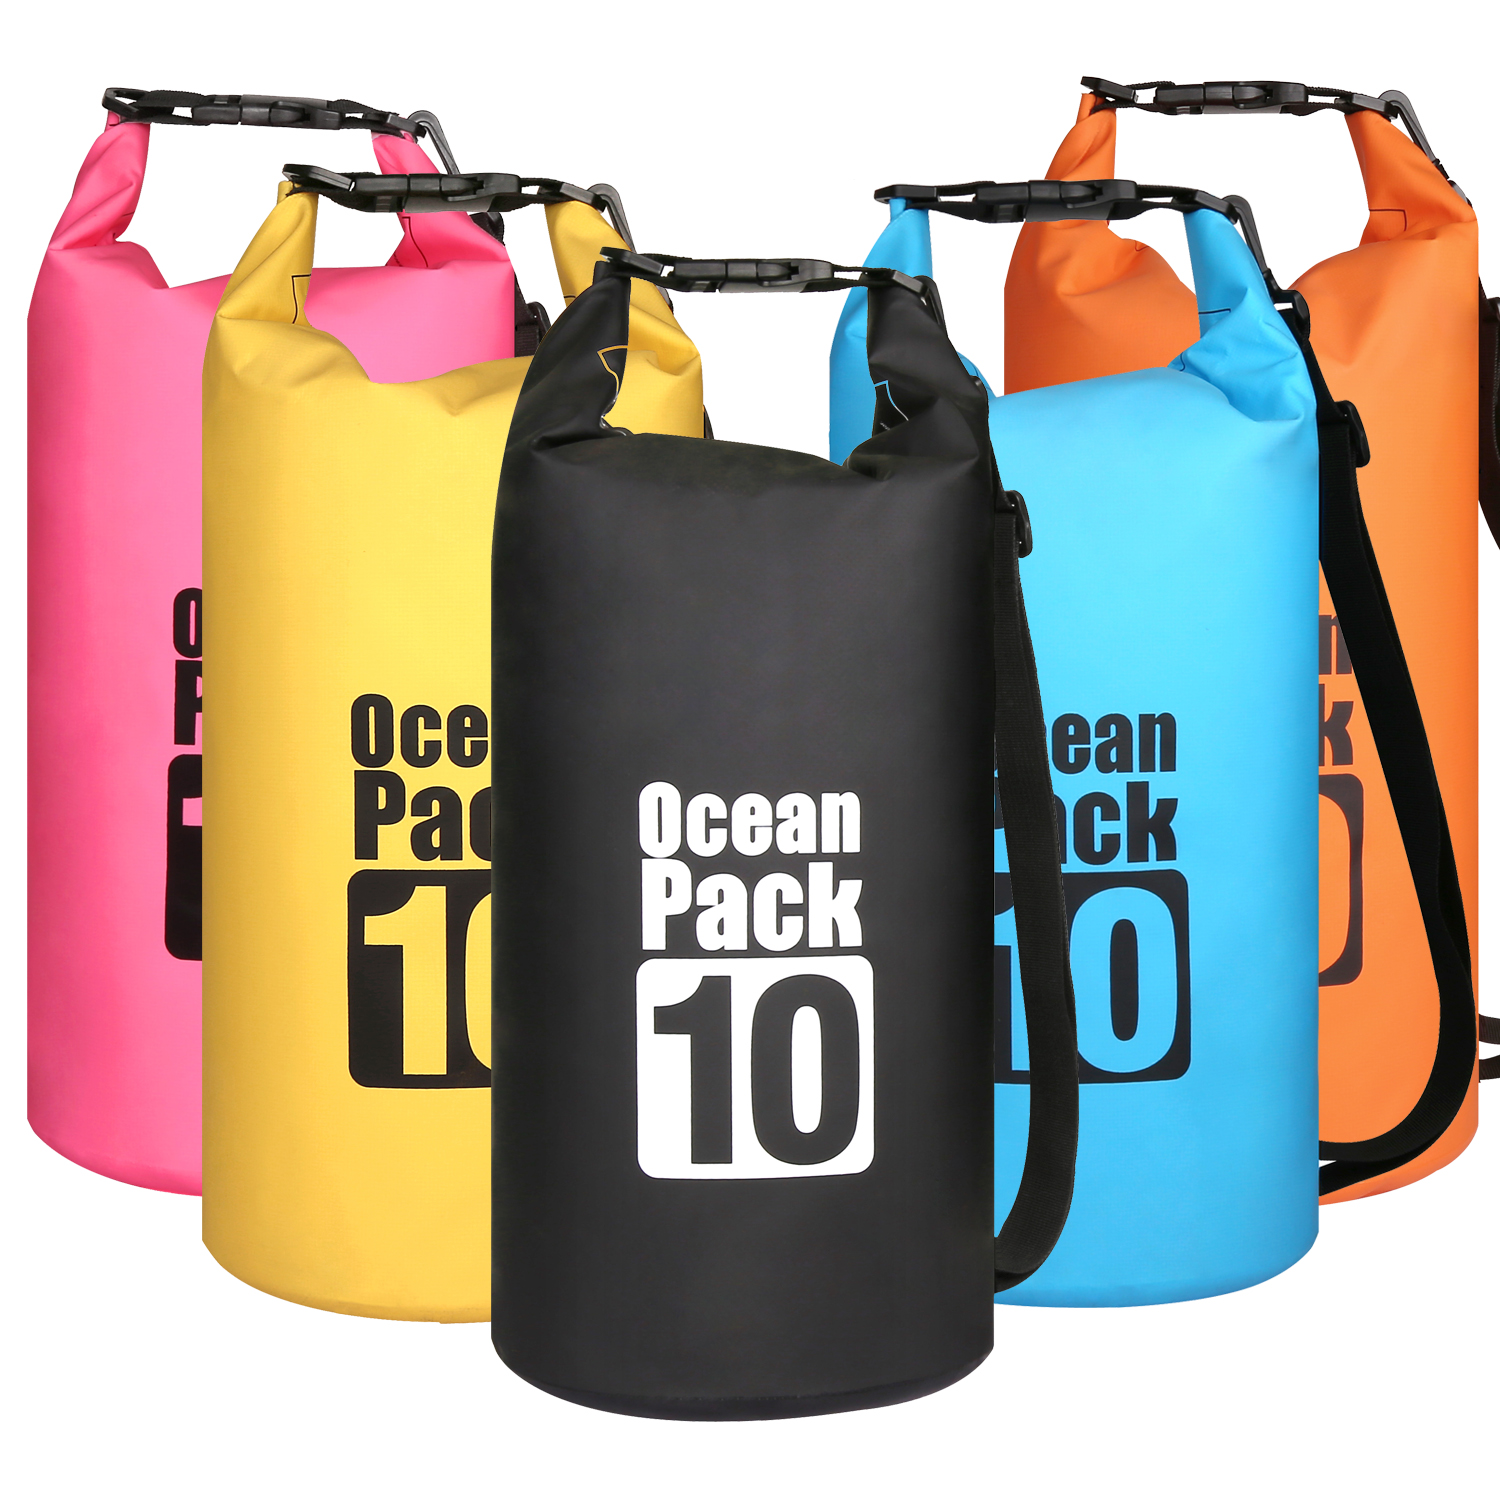 10L Waterproof Water Resistant Dry Bag Sack Storage Pack Pouch Swimming Outdoor Kayaking Canoeing River Trekking Boating